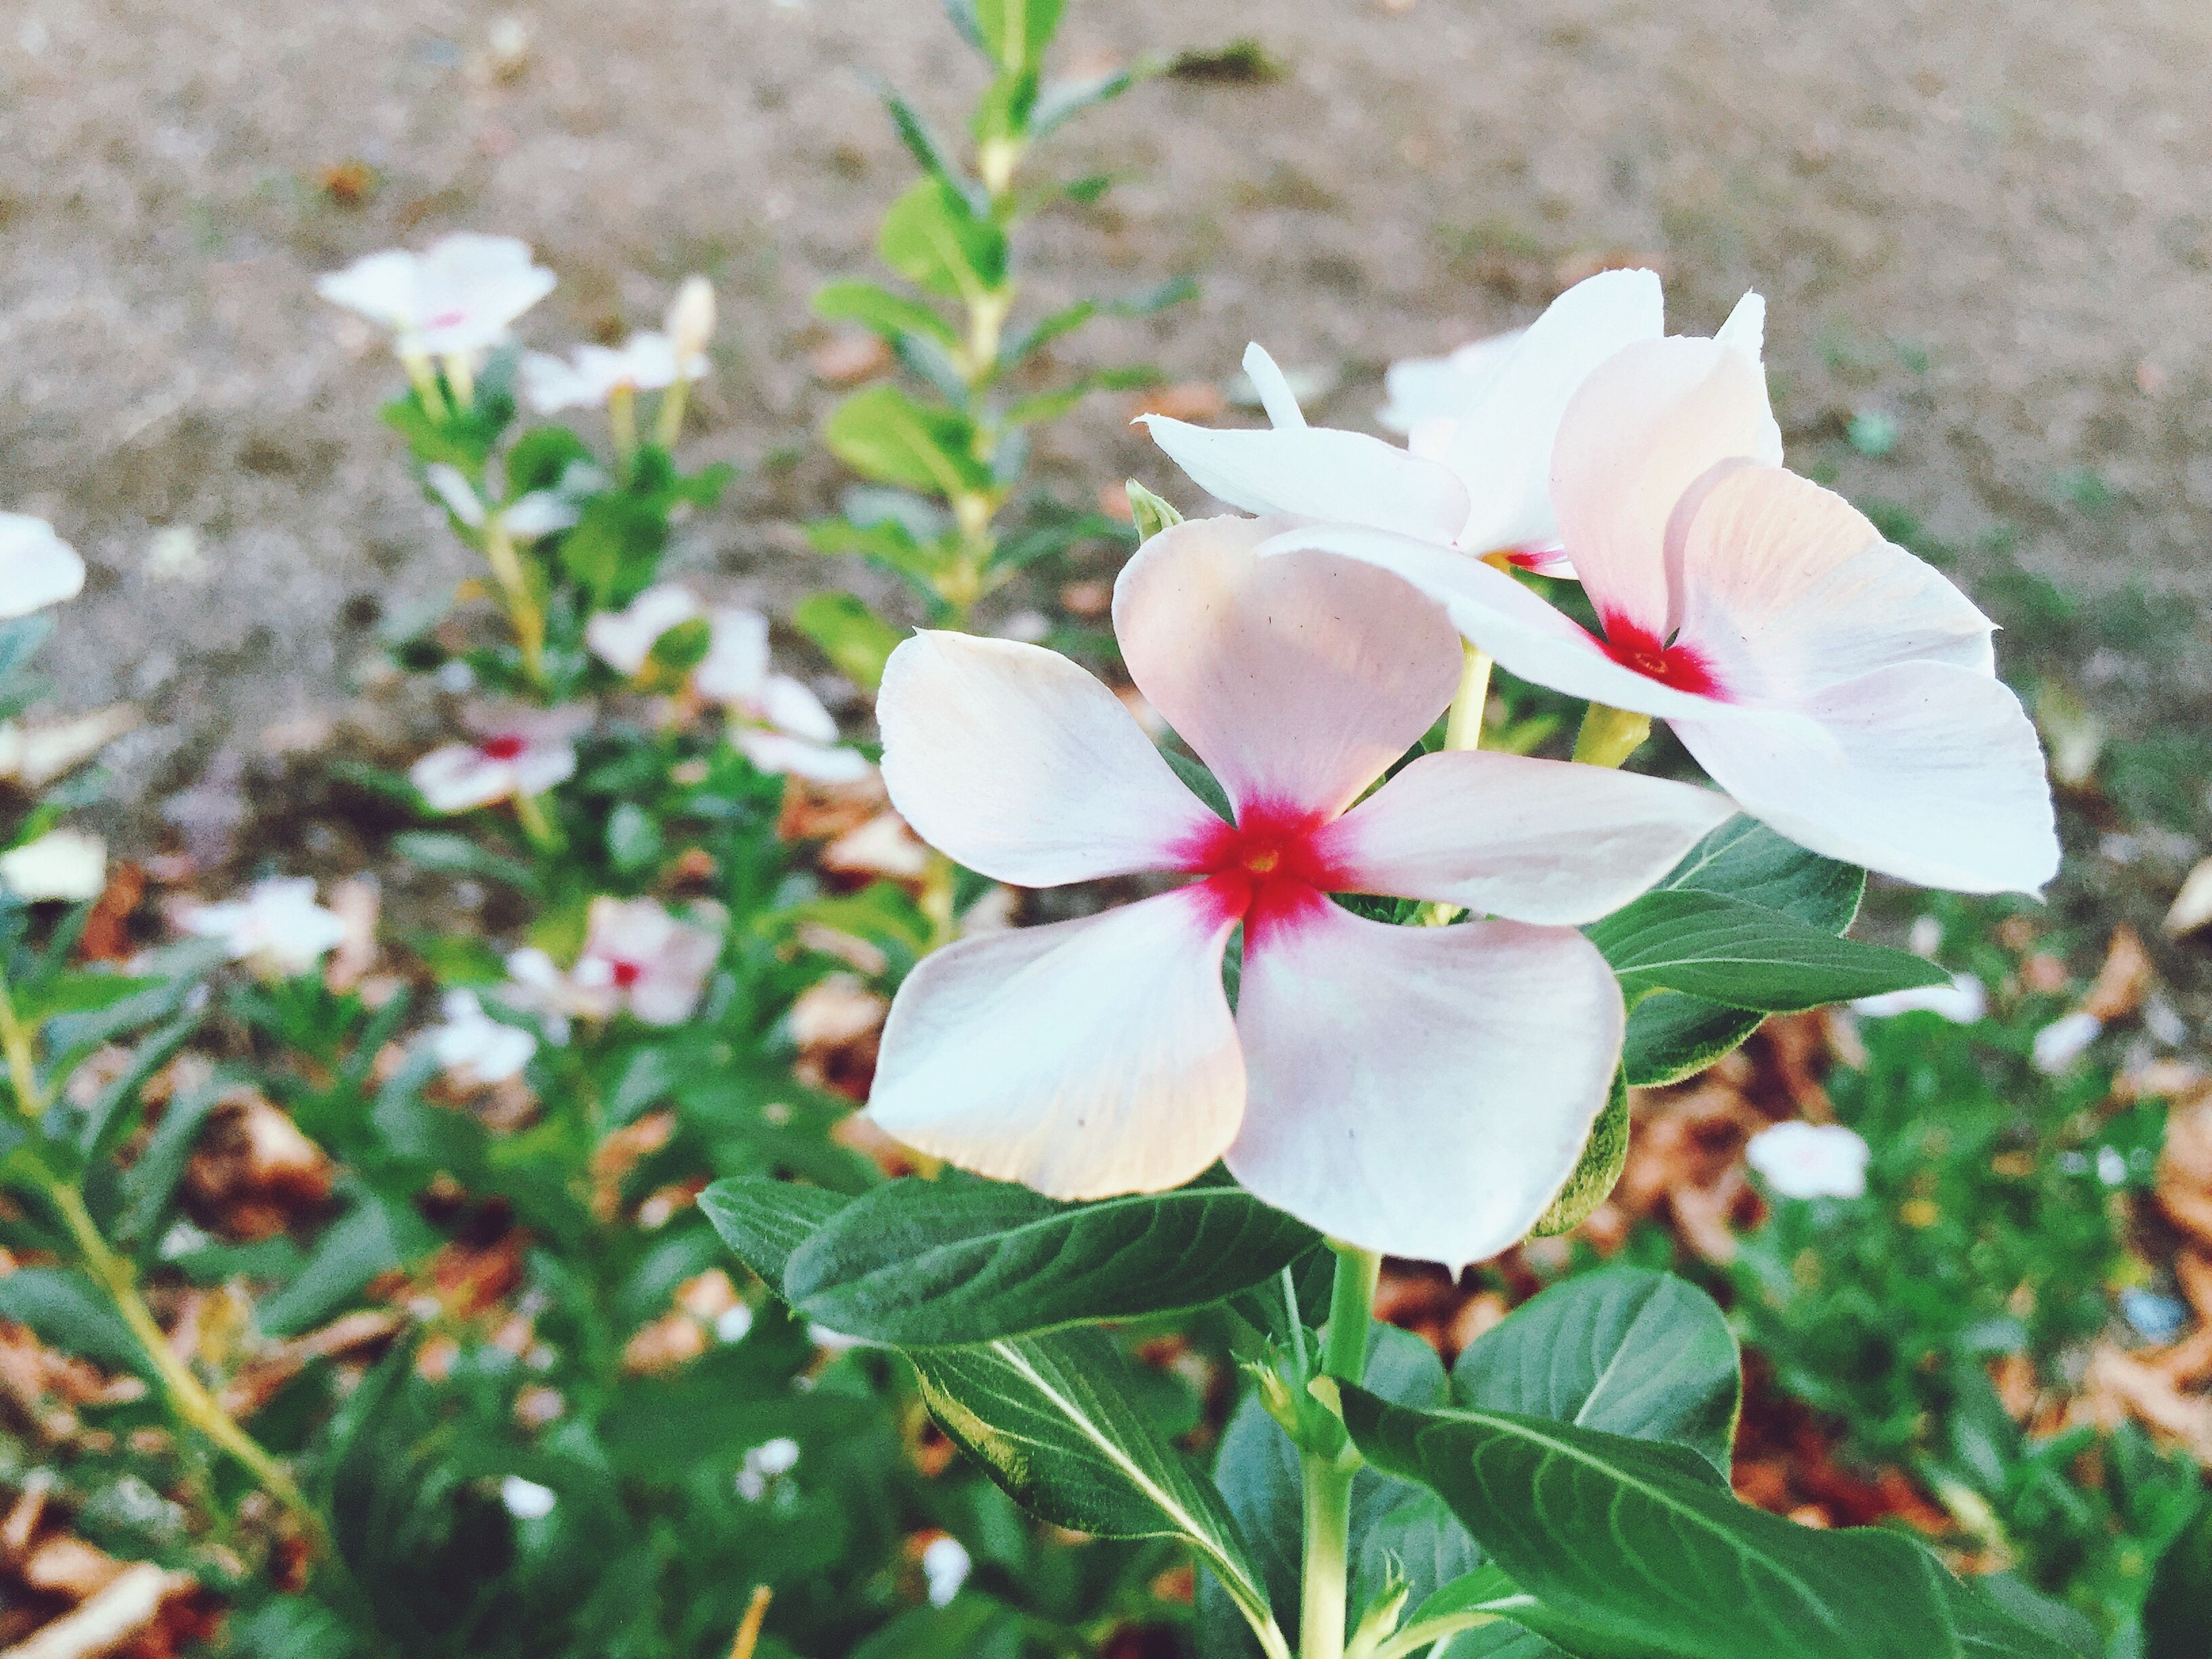 flower, petal, freshness, fragility, flower head, growth, beauty in nature, blooming, white color, nature, close-up, pollen, stamen, high angle view, plant, in bloom, focus on foreground, leaf, field, single flower